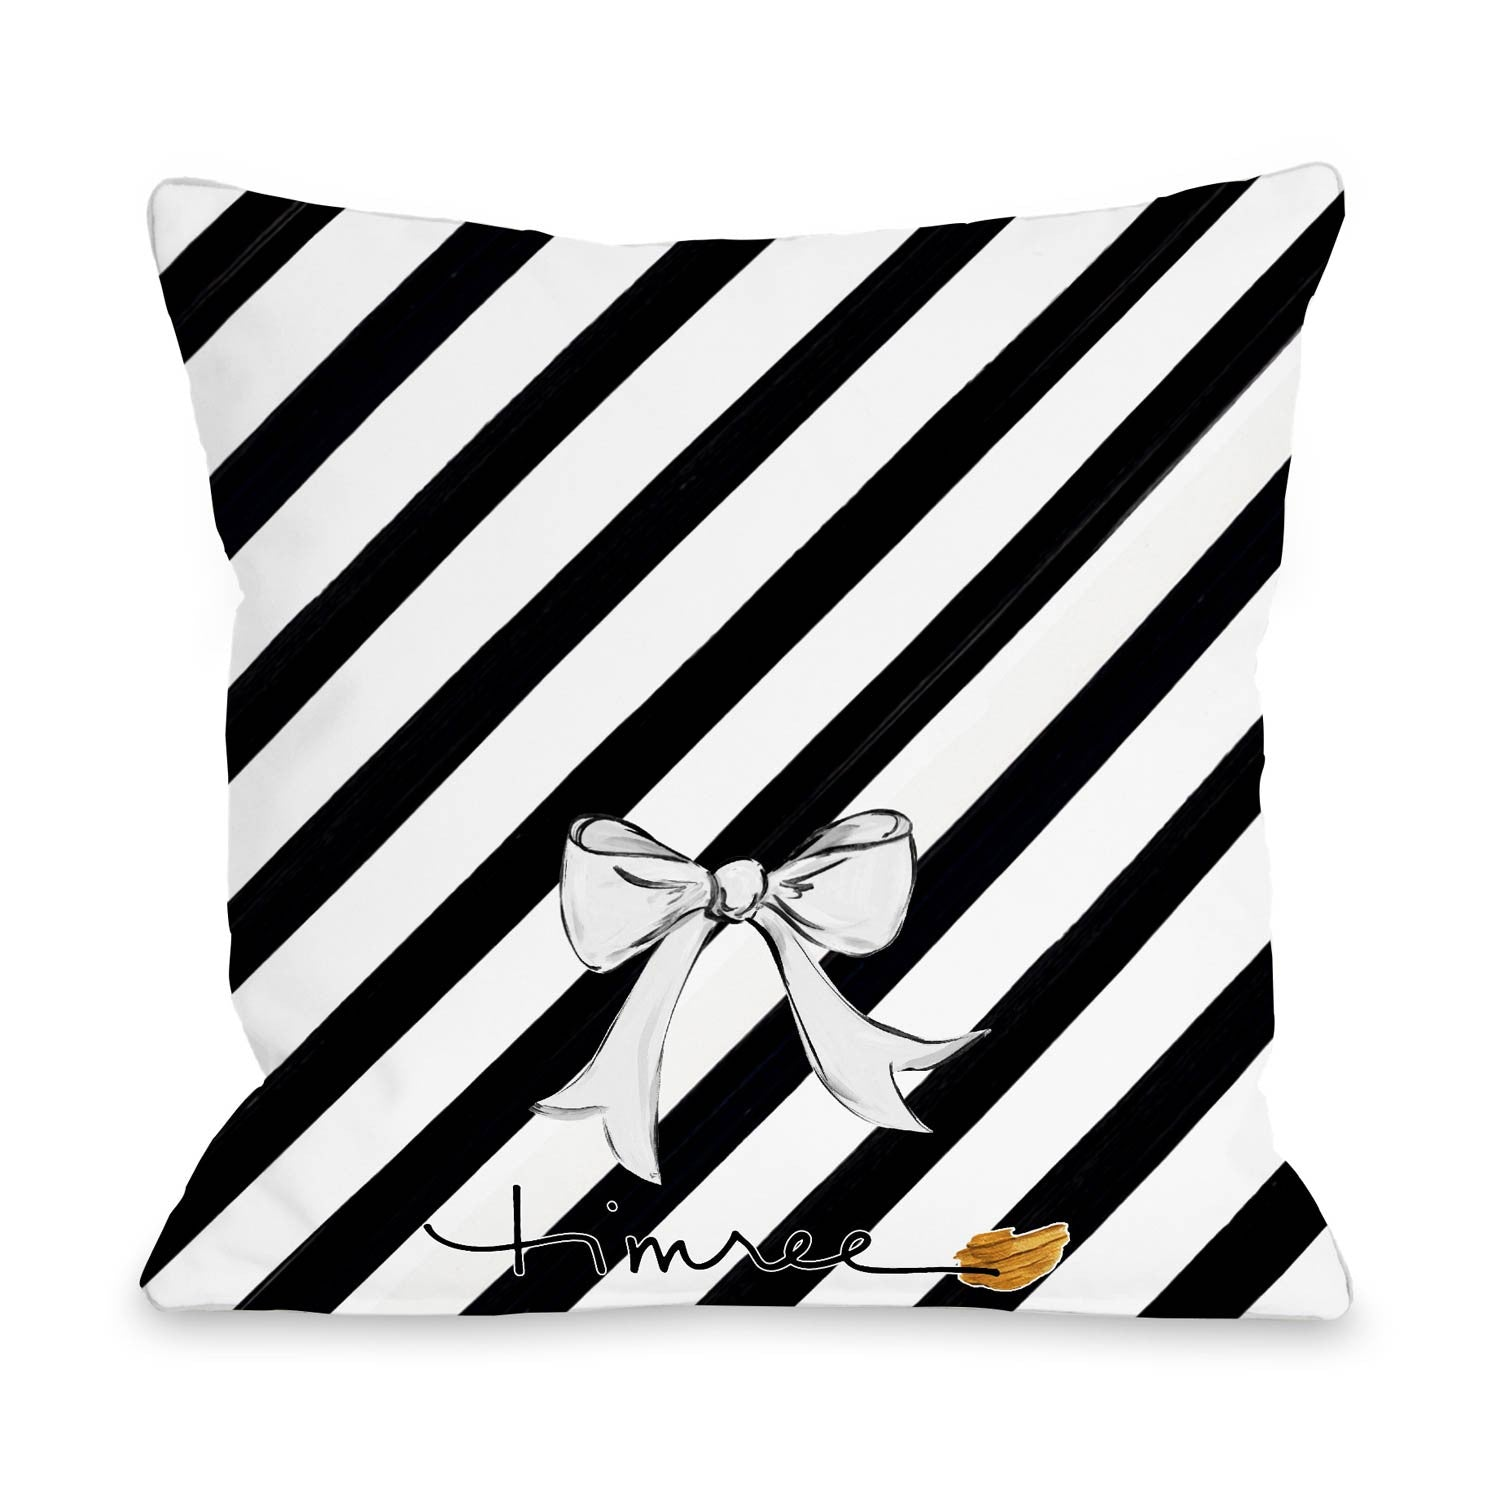 Hello Beautiful/Stripes Reversible Pillow by Timree Gold